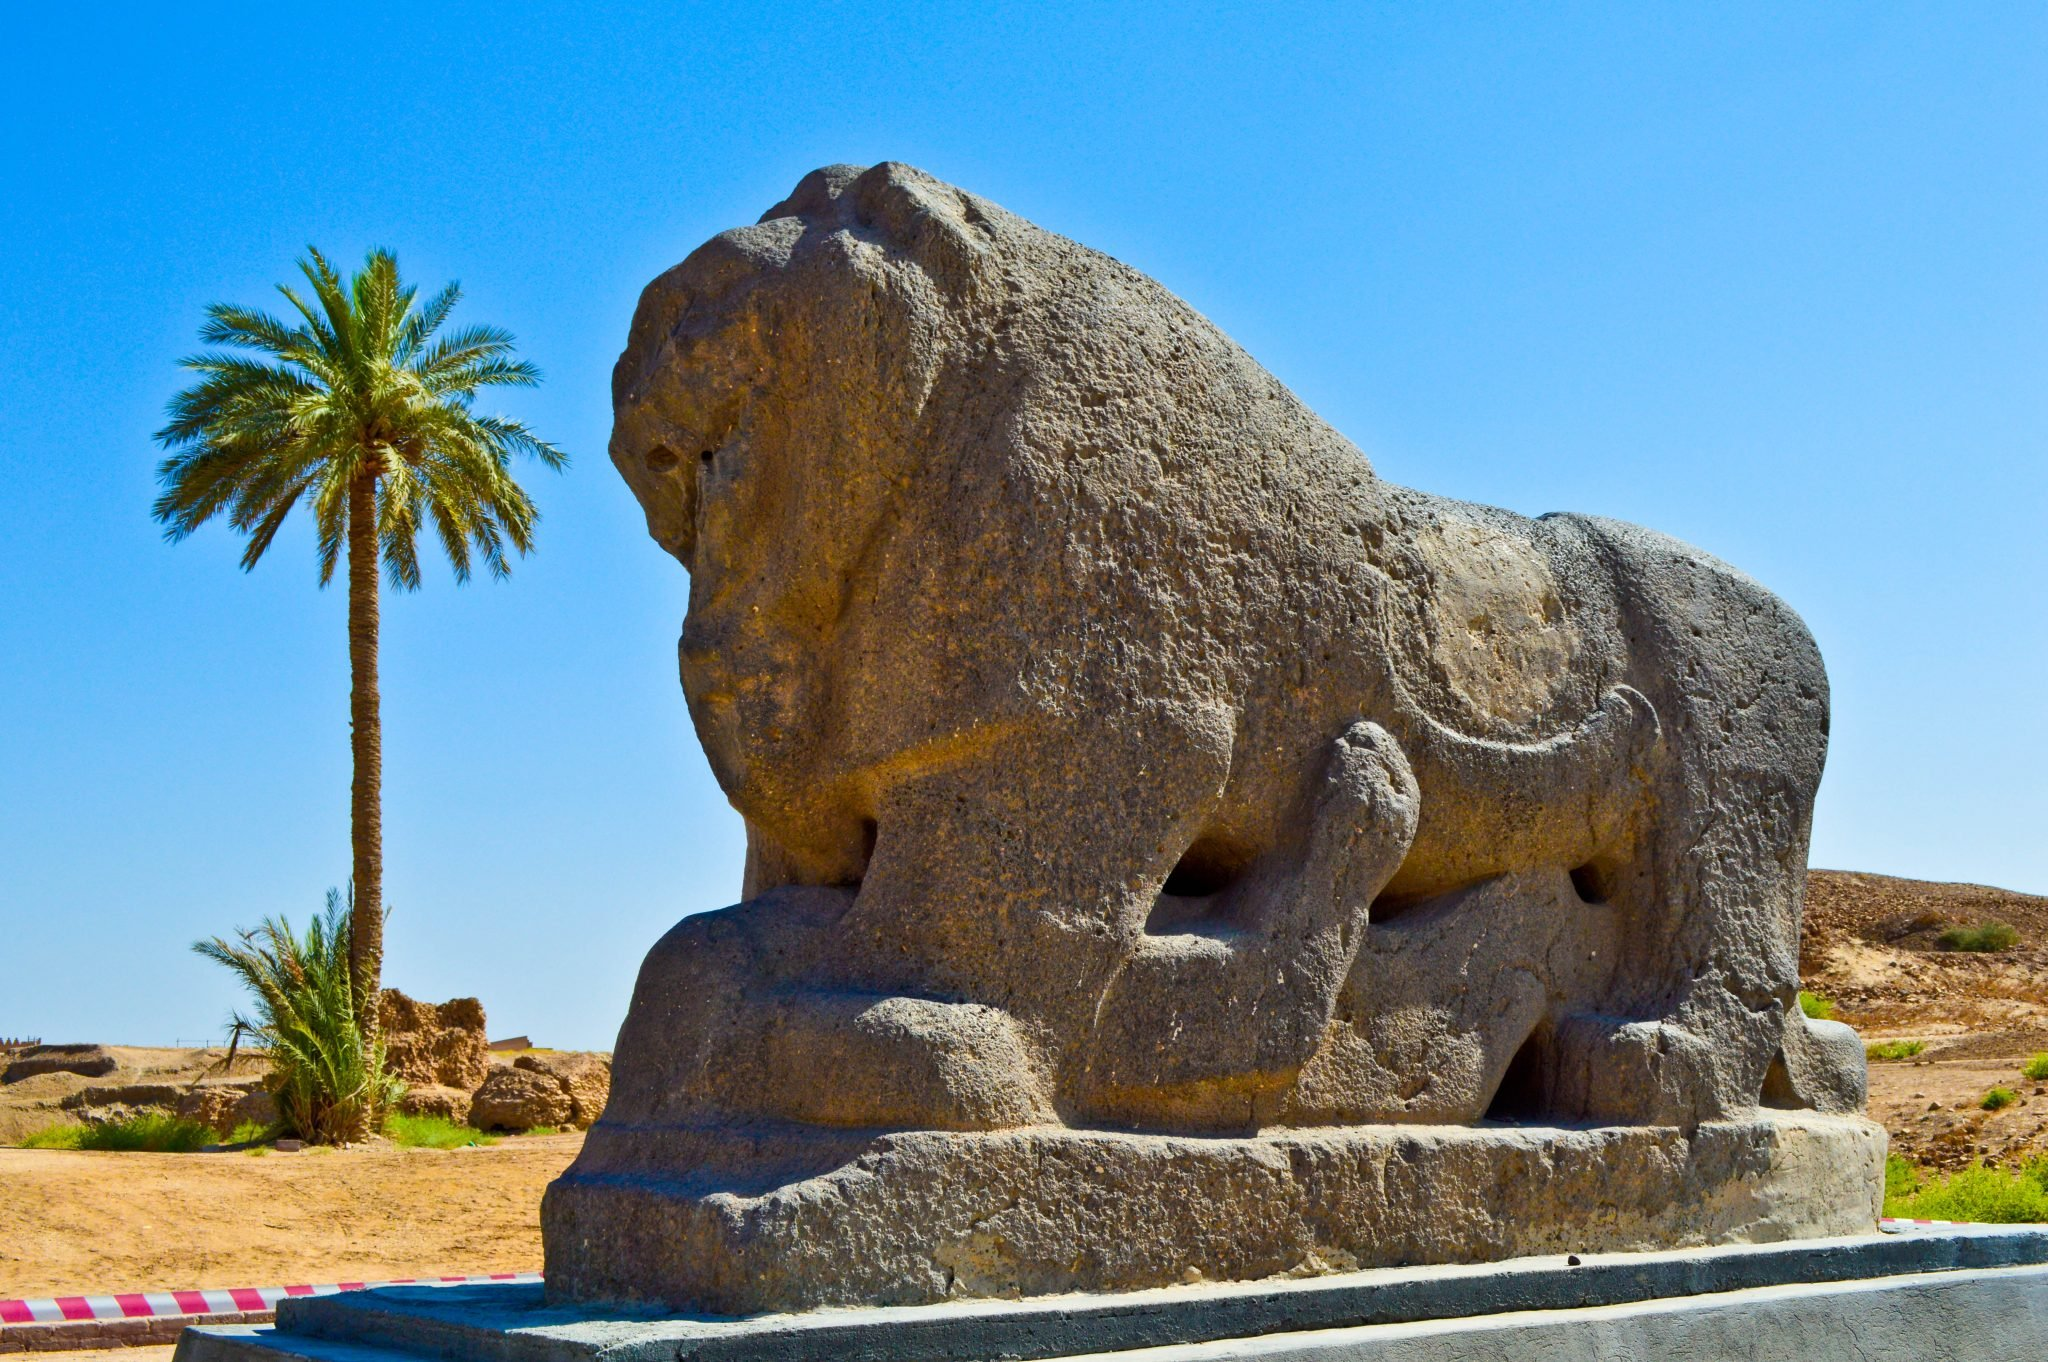 The Lion of Babylon statue. Basalt. Neo-Babylonian period, reign of king